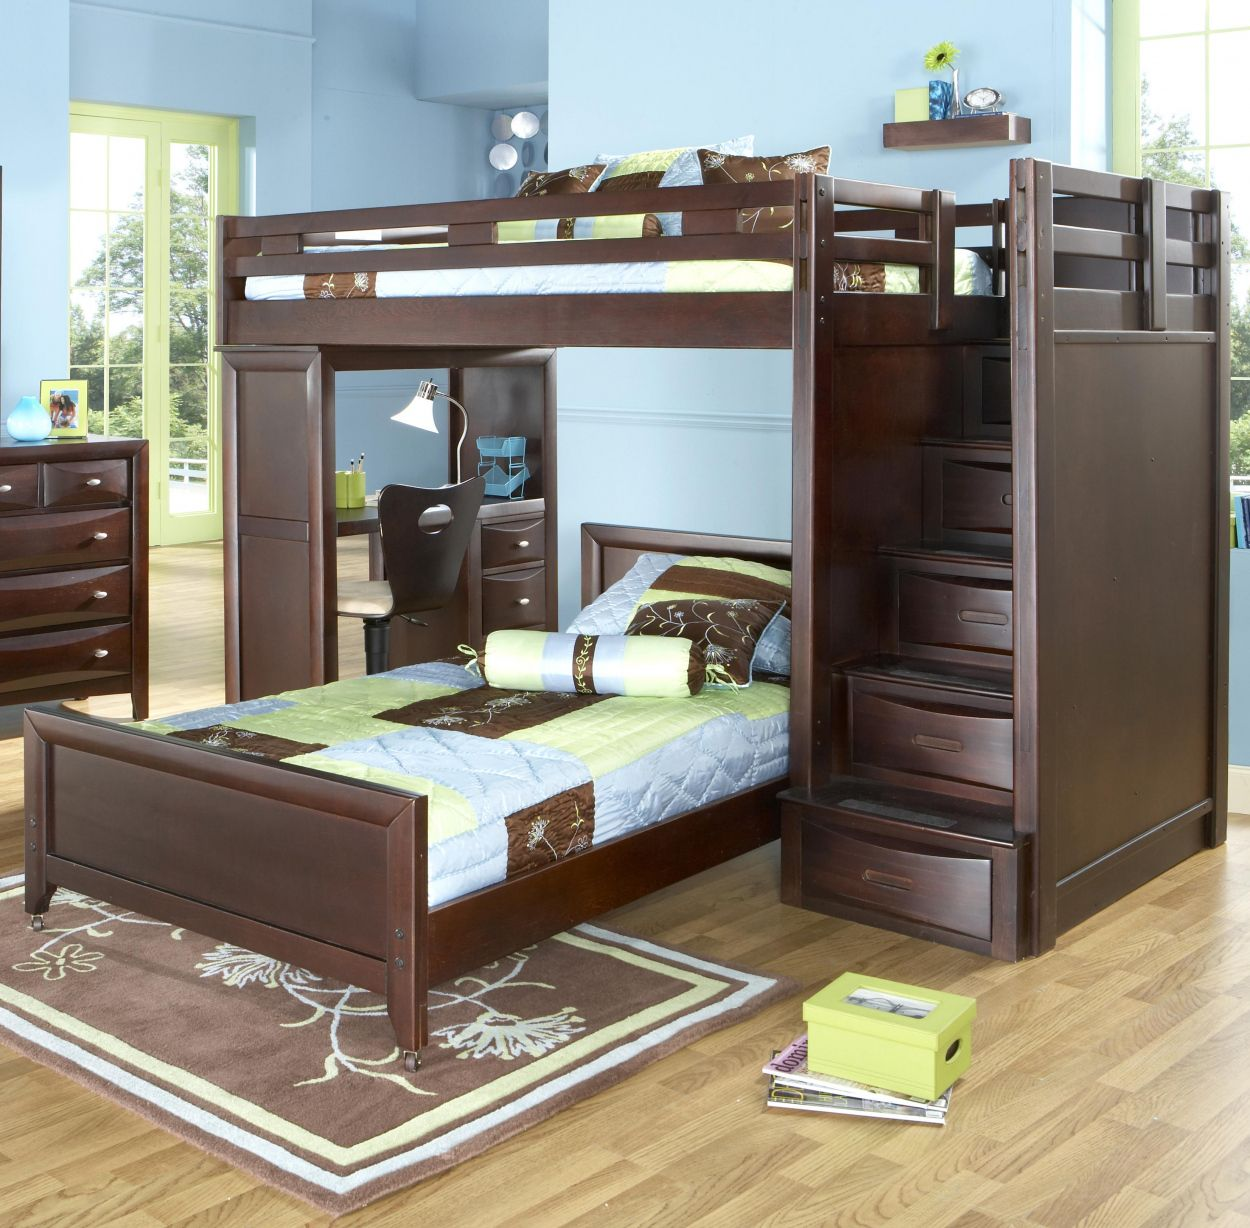 Pin Oleh Luciver Sanom Di Young Design Bunk Beds Bunk Bed With